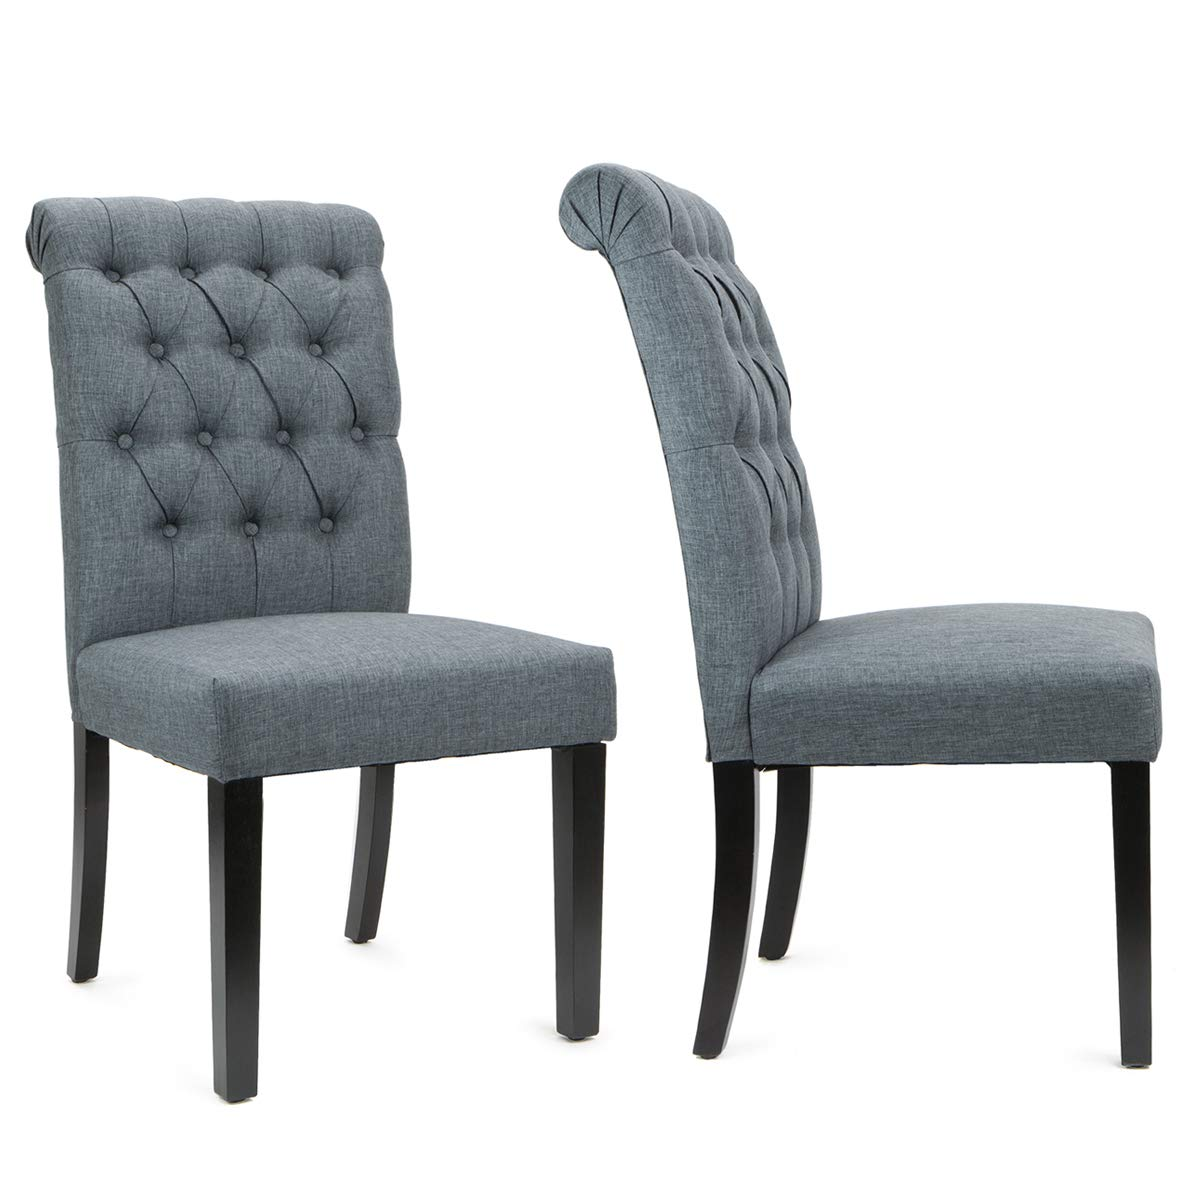 XtremepowerUS Set of (2) Dining Room Side Chair Tufted Padded Seat High Backrest Chairs Armless Wooden Legs (Gray)